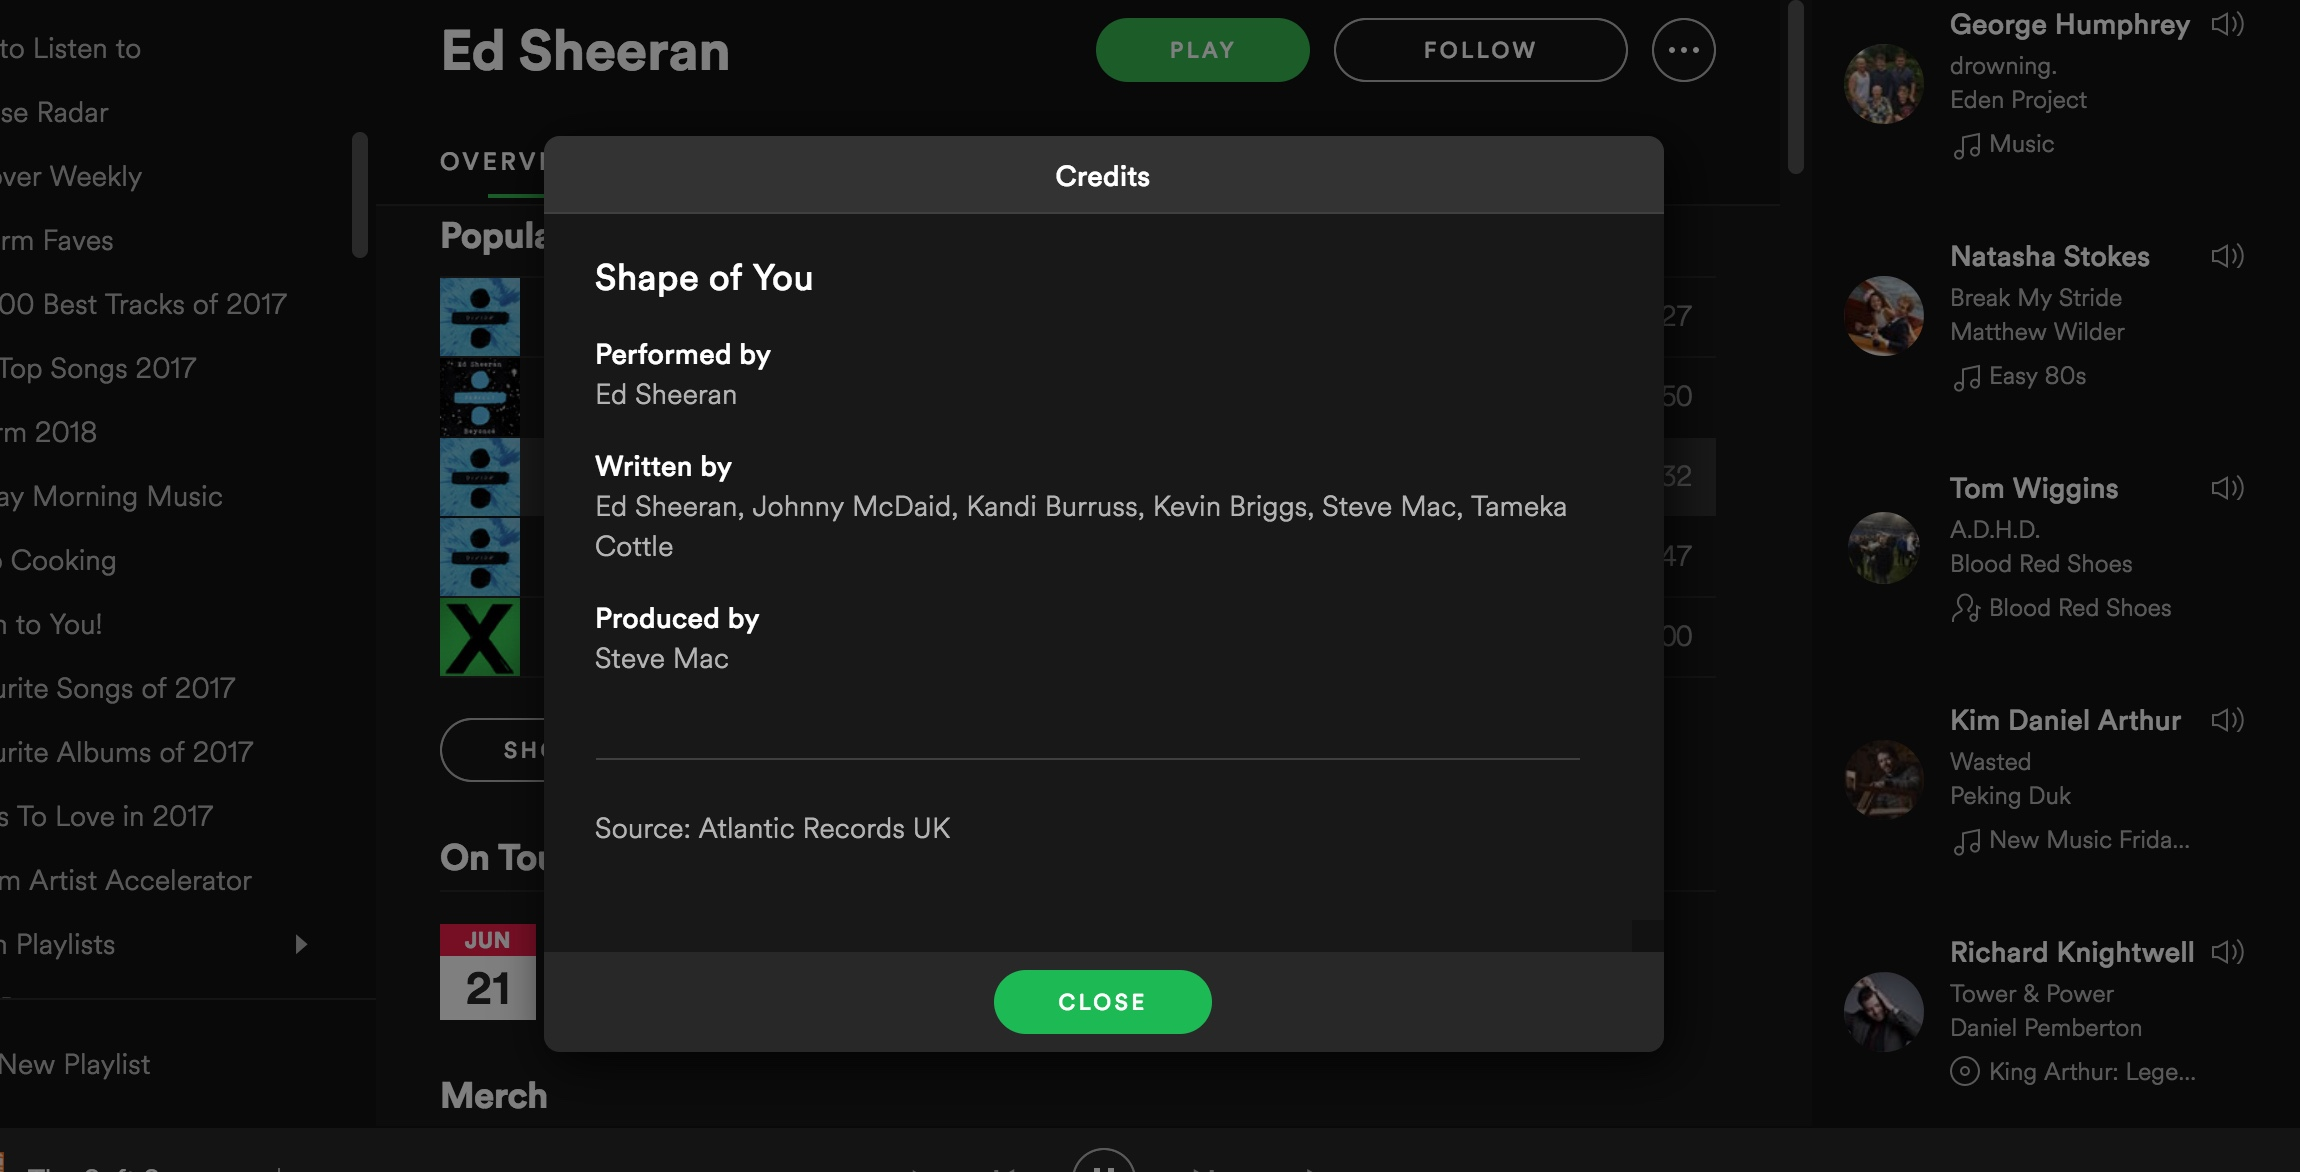 Spotify adds songwriting and production credits to its